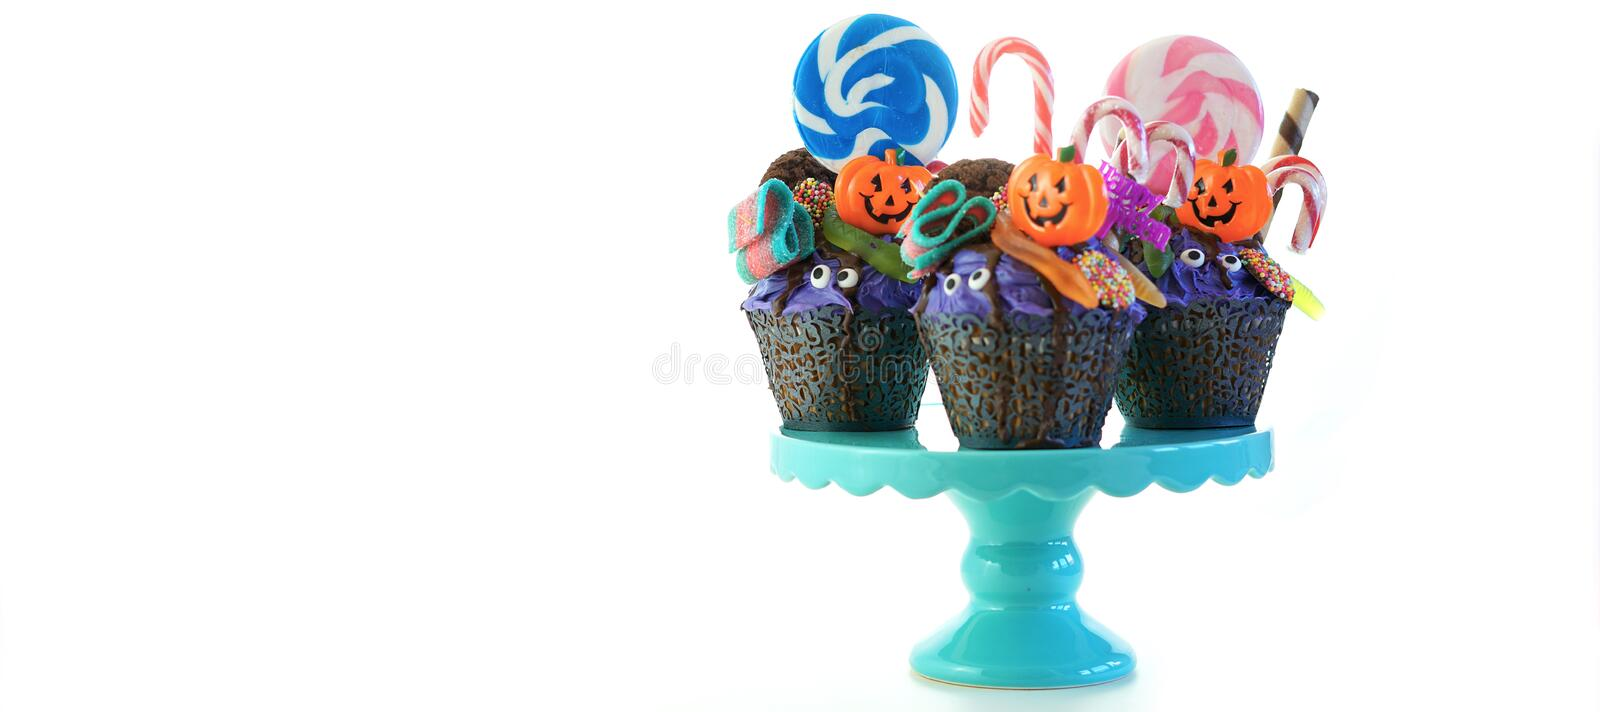 Halloween candyland drip cake style cupcakes with lollipops and candy on white. royalty free stock images